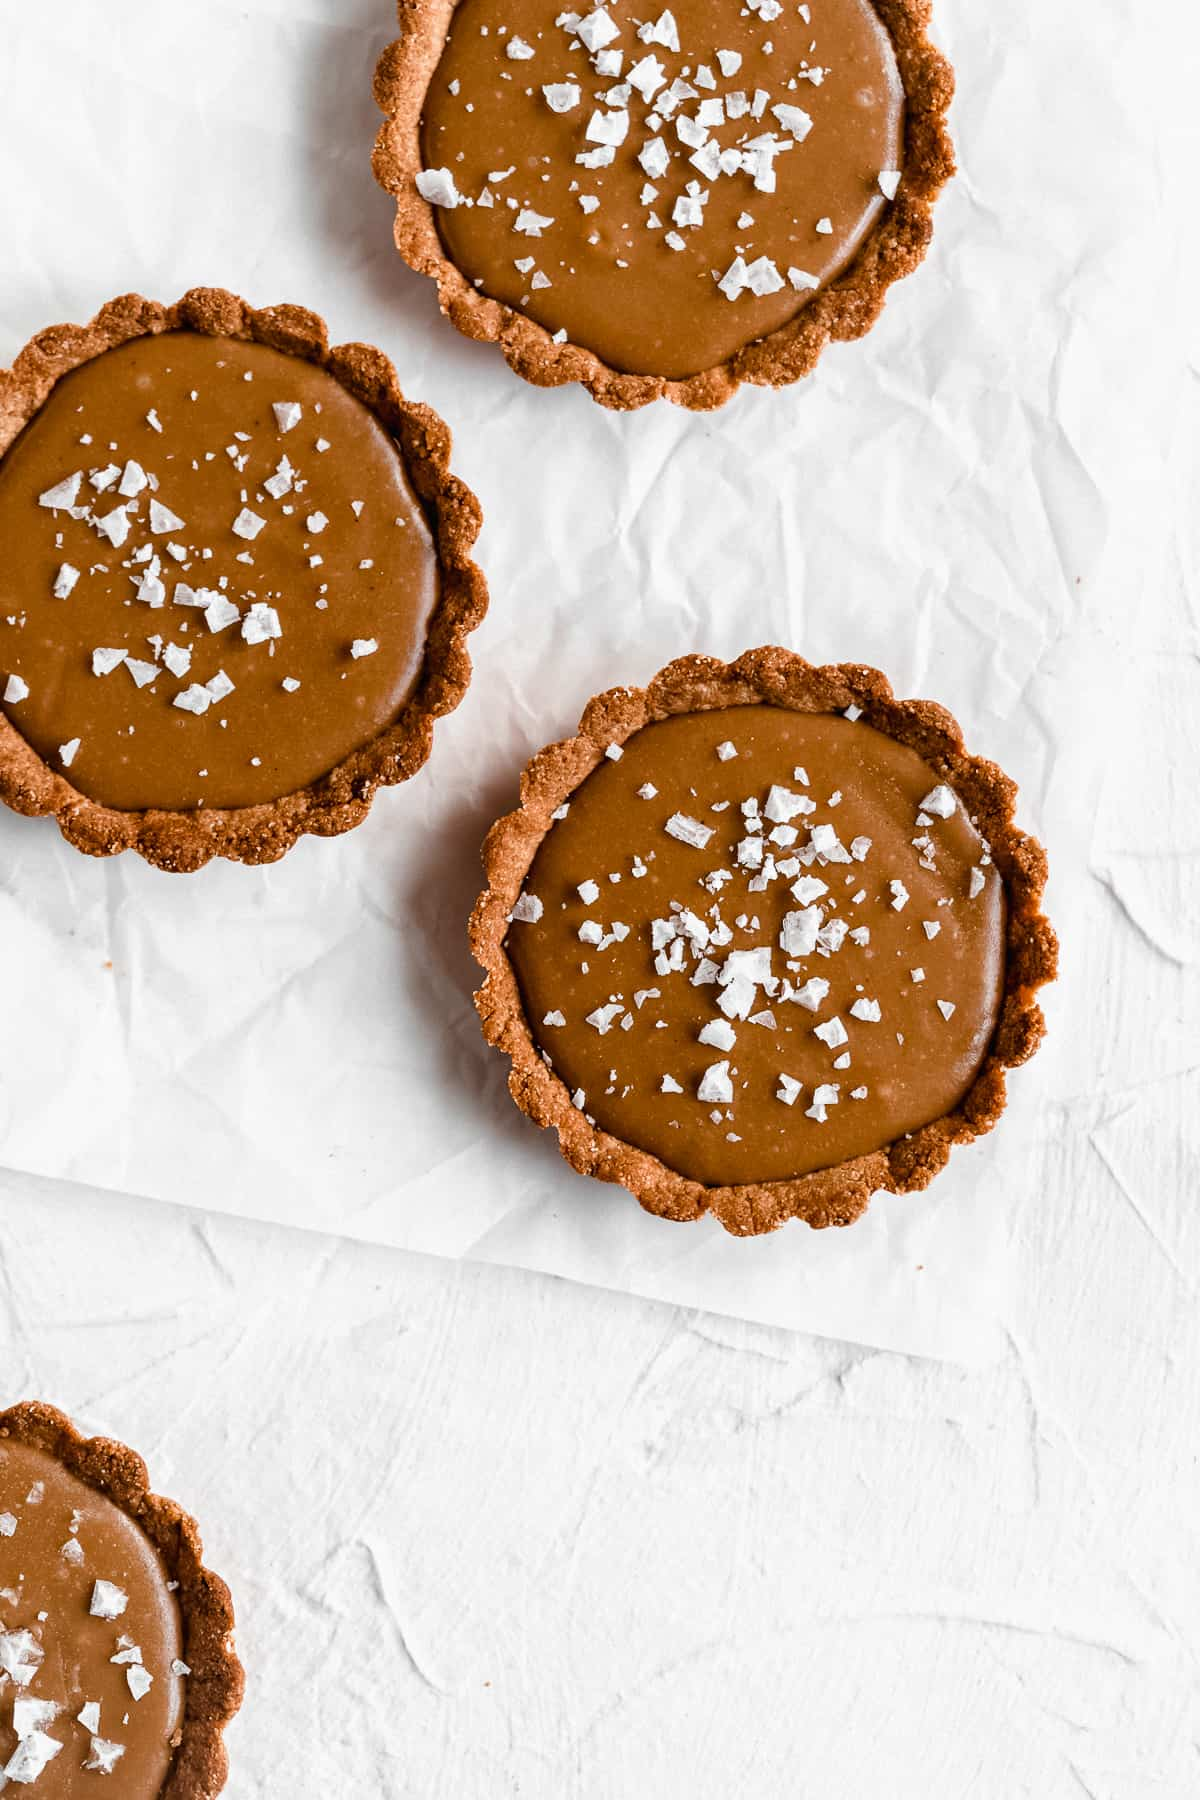 Overhead photo of three Vegan Salted Caramel Tarts arranged on white parchment paper.